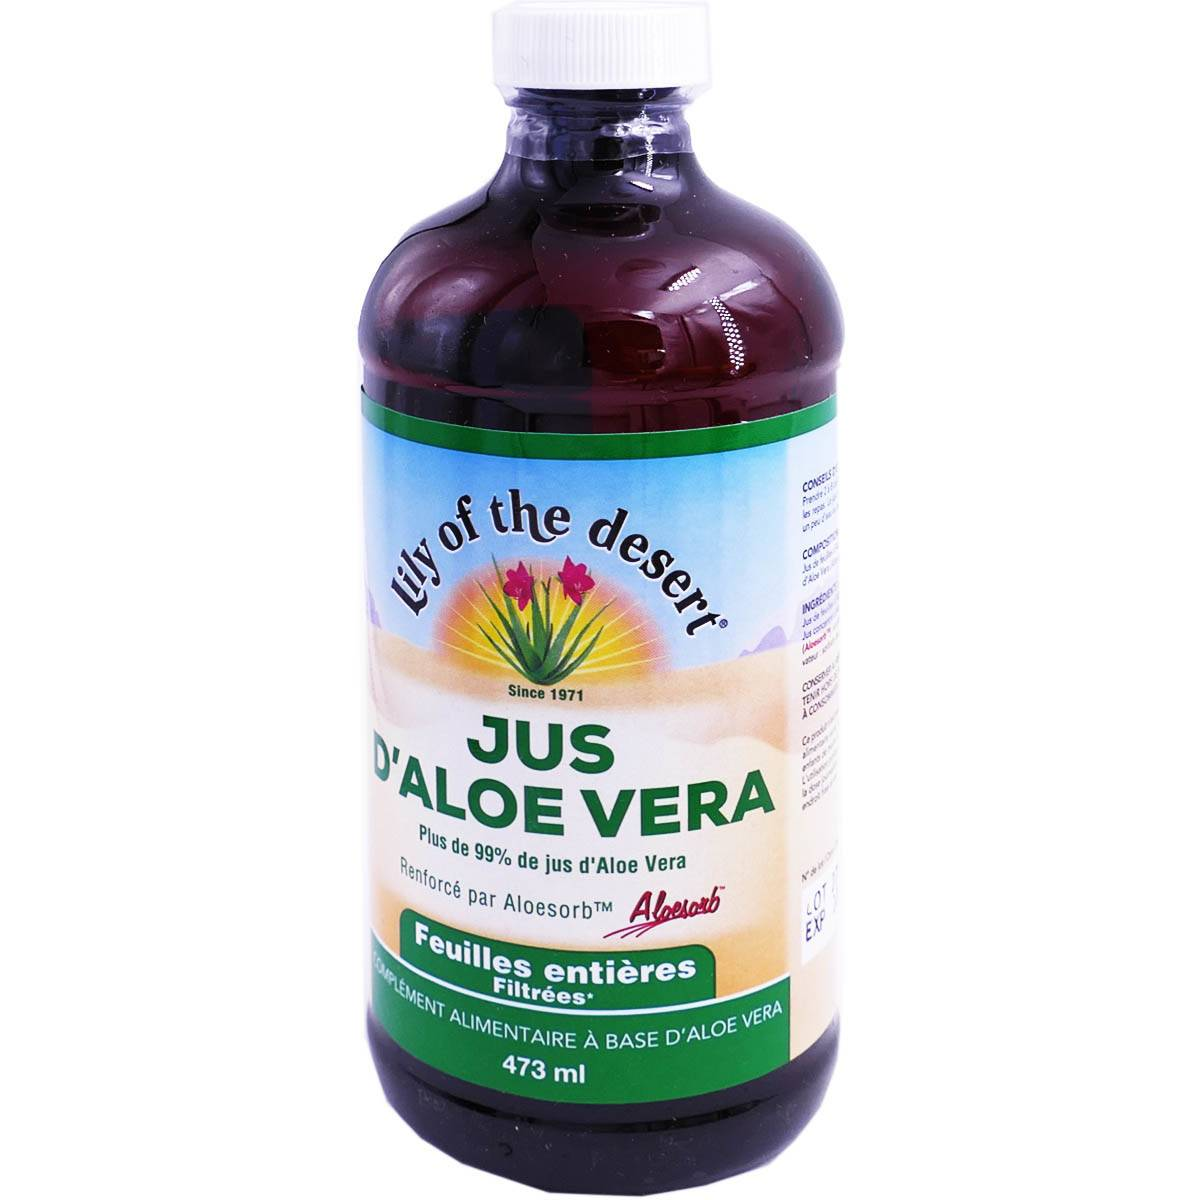 LILY OF THE DESERT Jus d'aloe vera - feuilles entieres 473ml